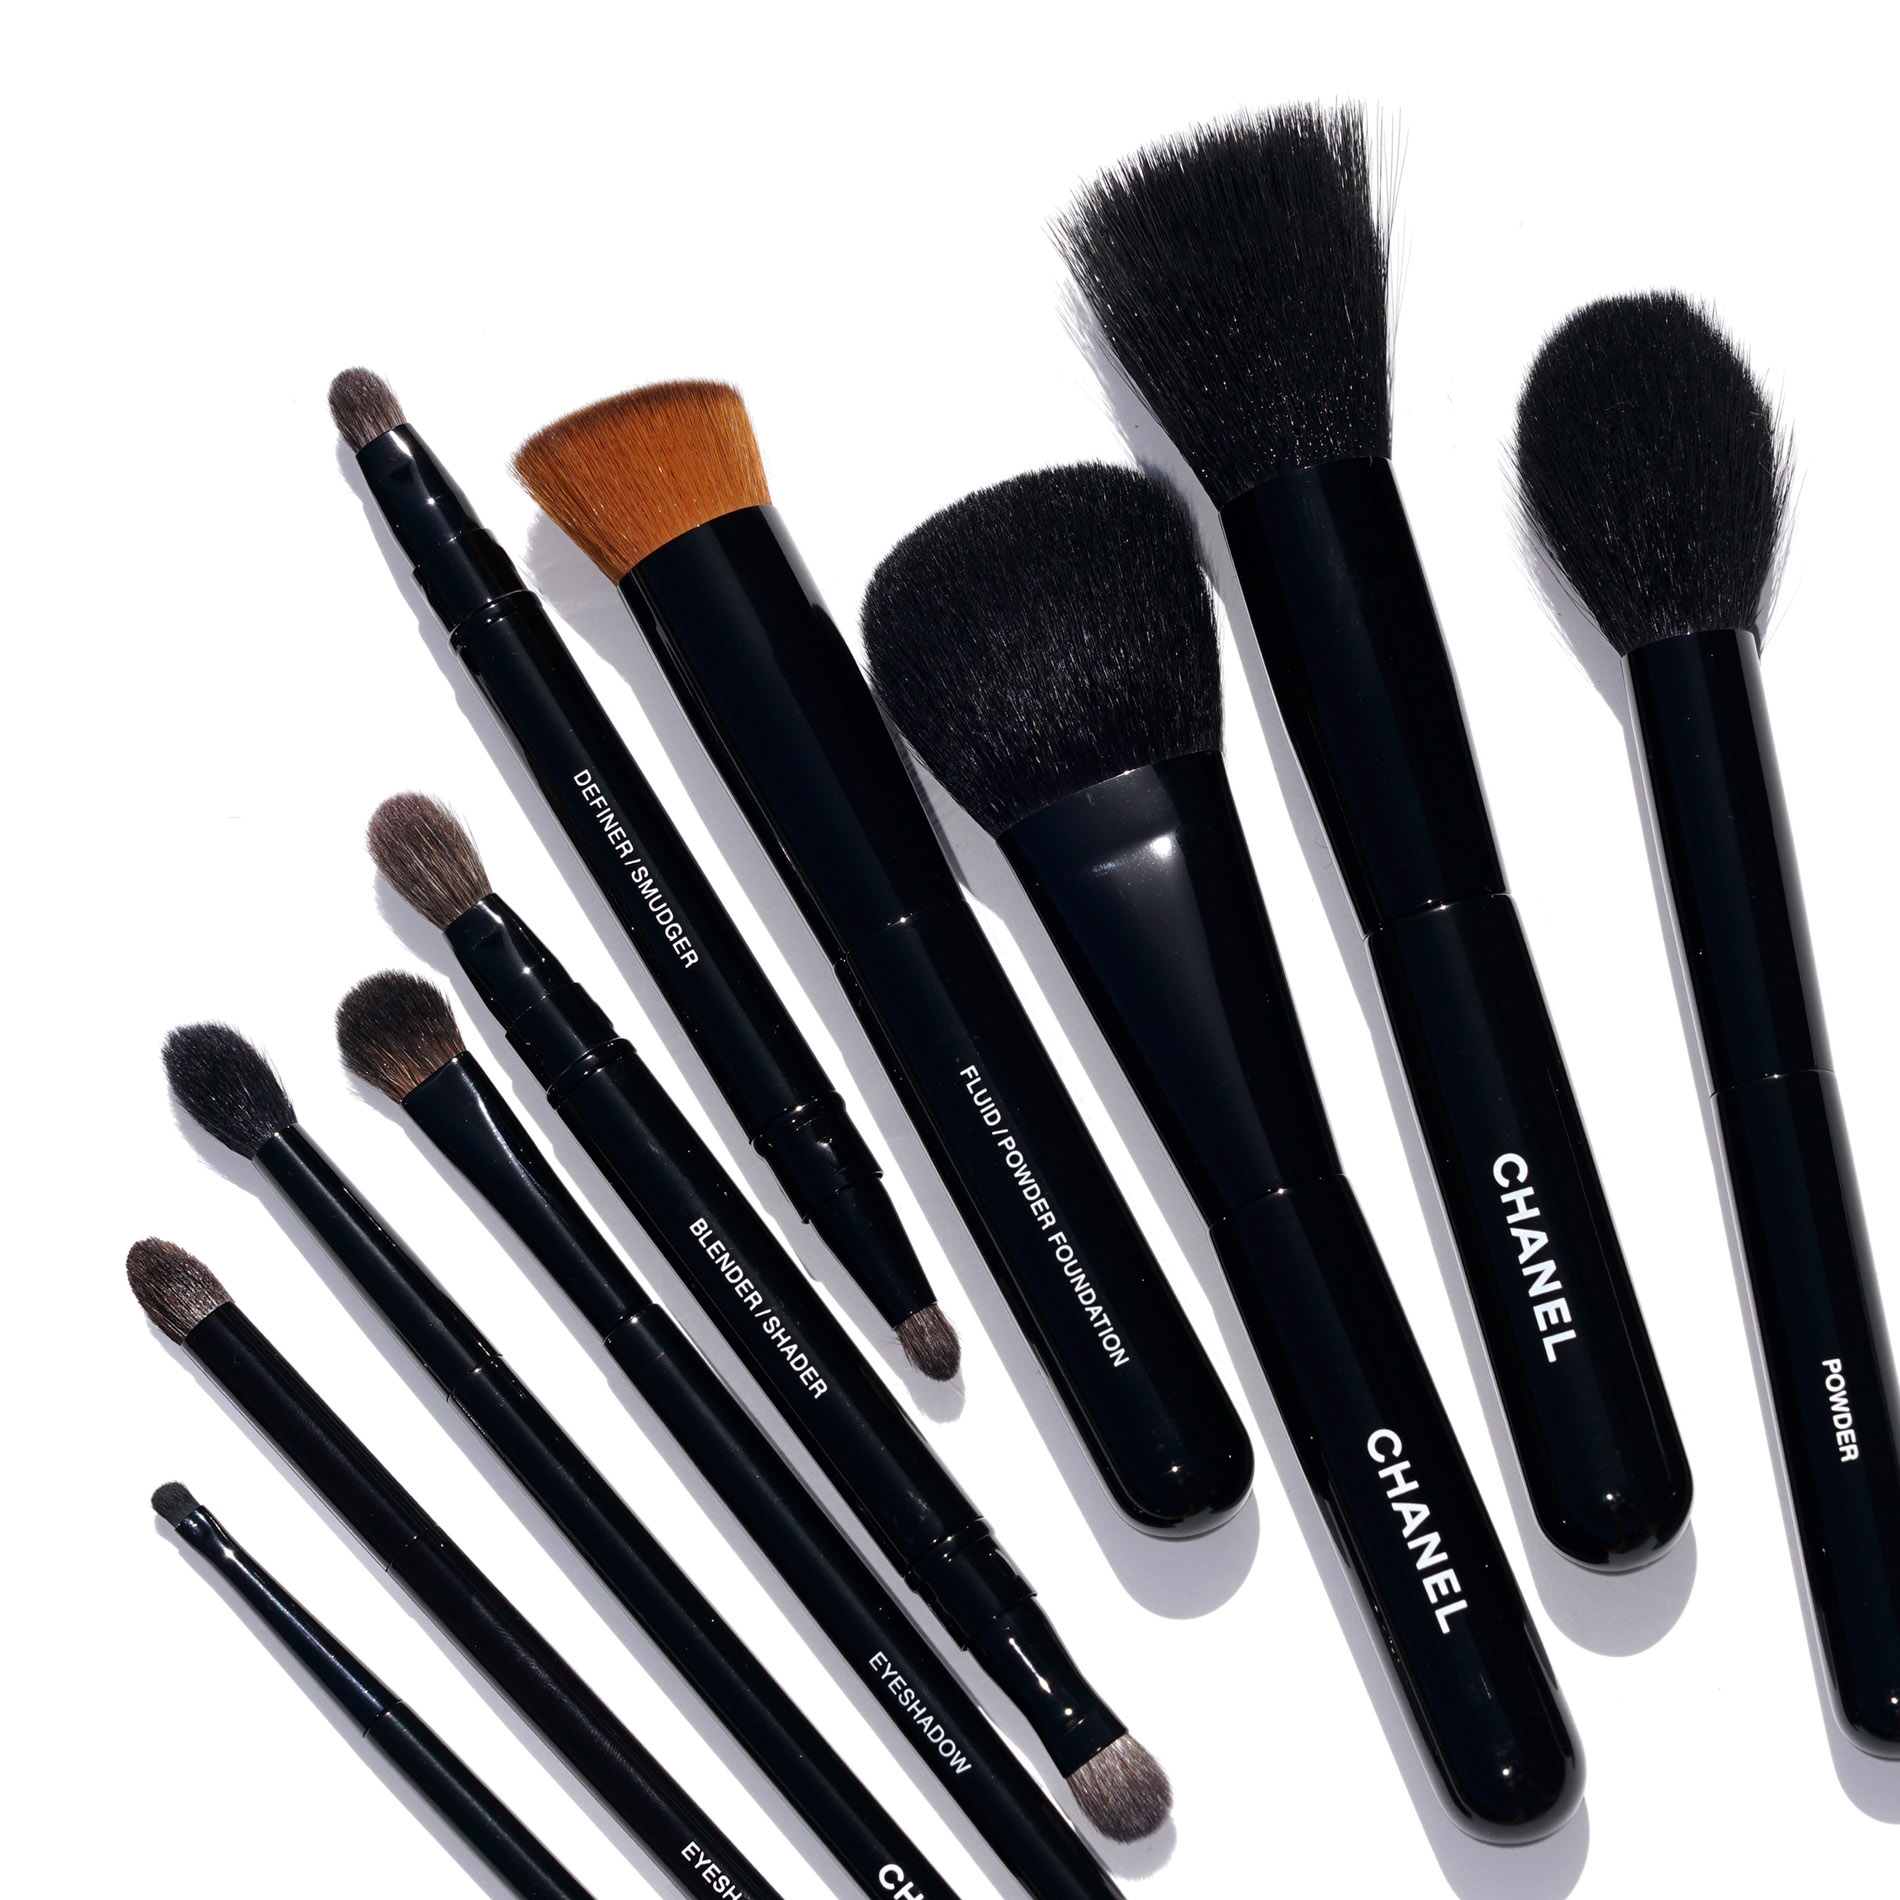 What are chanel makeup brushes made of makeup geek for What is cosmetics made of